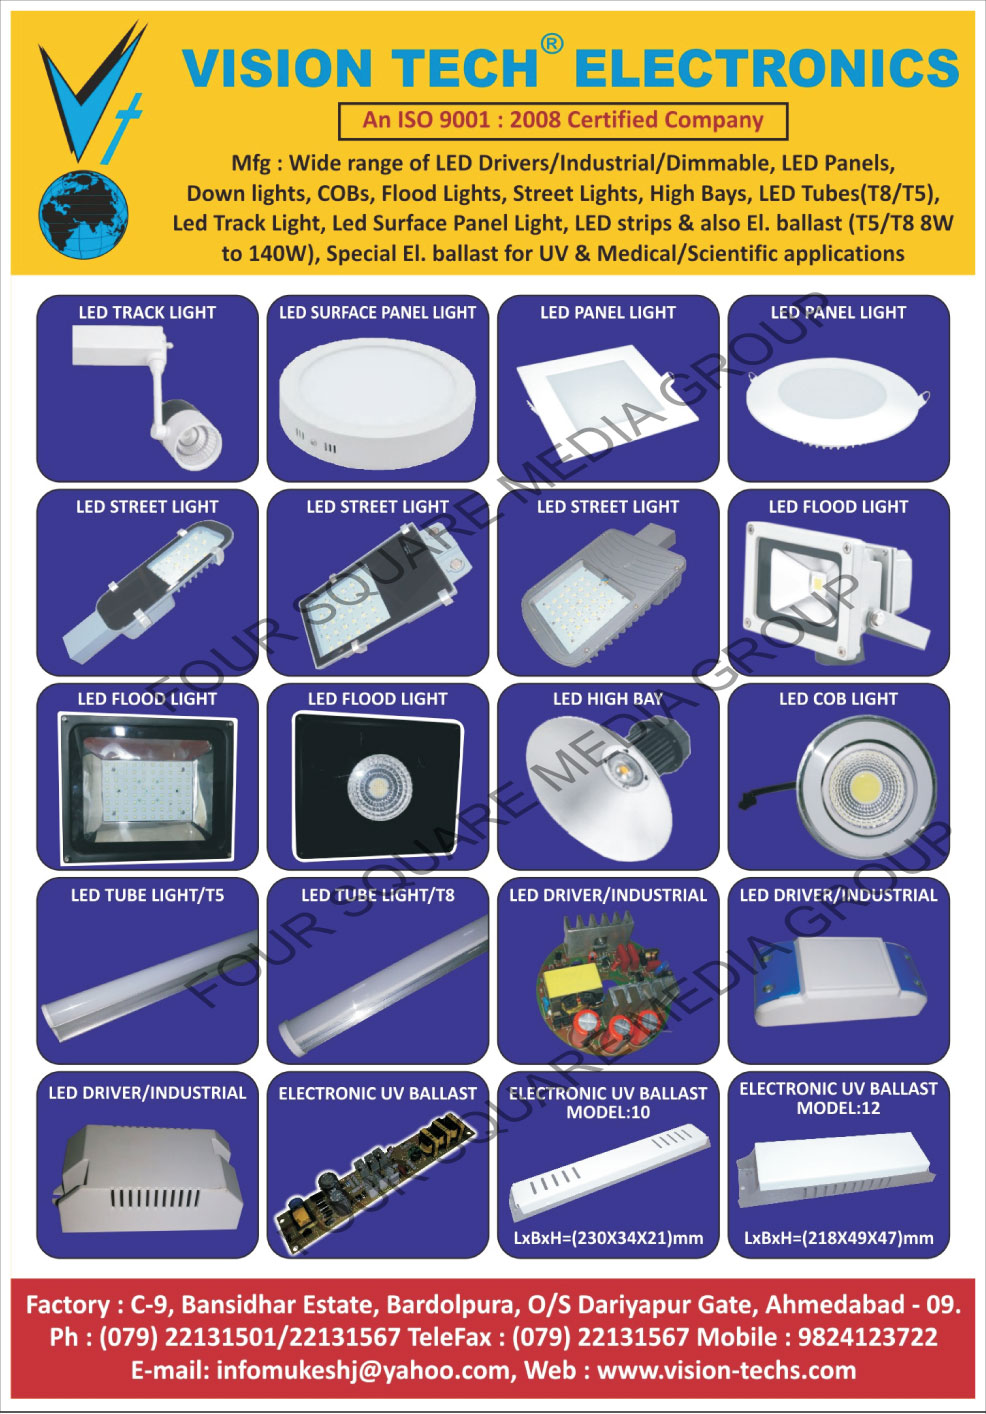 Led Drivers, Industrial Led Drivers, Dimmable Led Drivers, Led Panels, Led Down Lights, COBs, Led Flood Lights, Led  Street Lights, Led High Bay Lights, T8 Led Tube Lights, T5 Led Tube Lights, Led Track Lights, Surface Led Panel Lights, Led Strips, T5 Electronic Ballasts, T8 Electronic Ballasts, Electronic UV Ballasts, Led Cob Lights